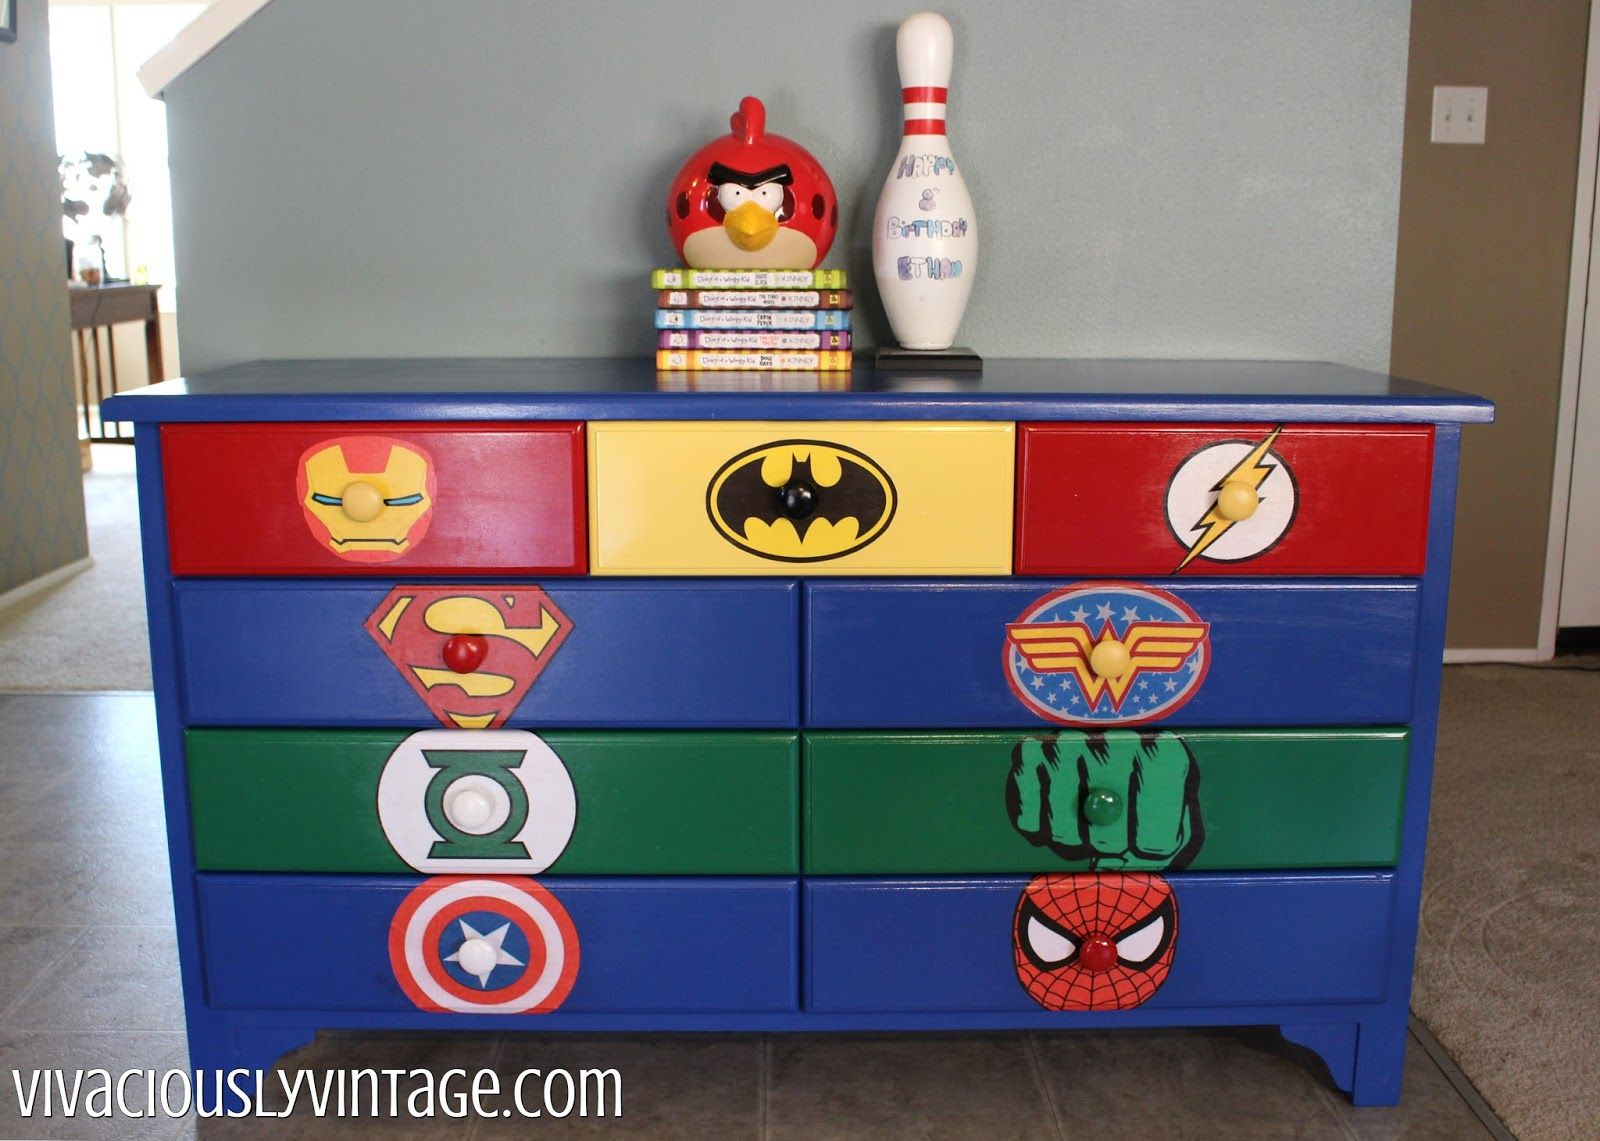 Vivaciously Vintage: Superhero Dresser Commission